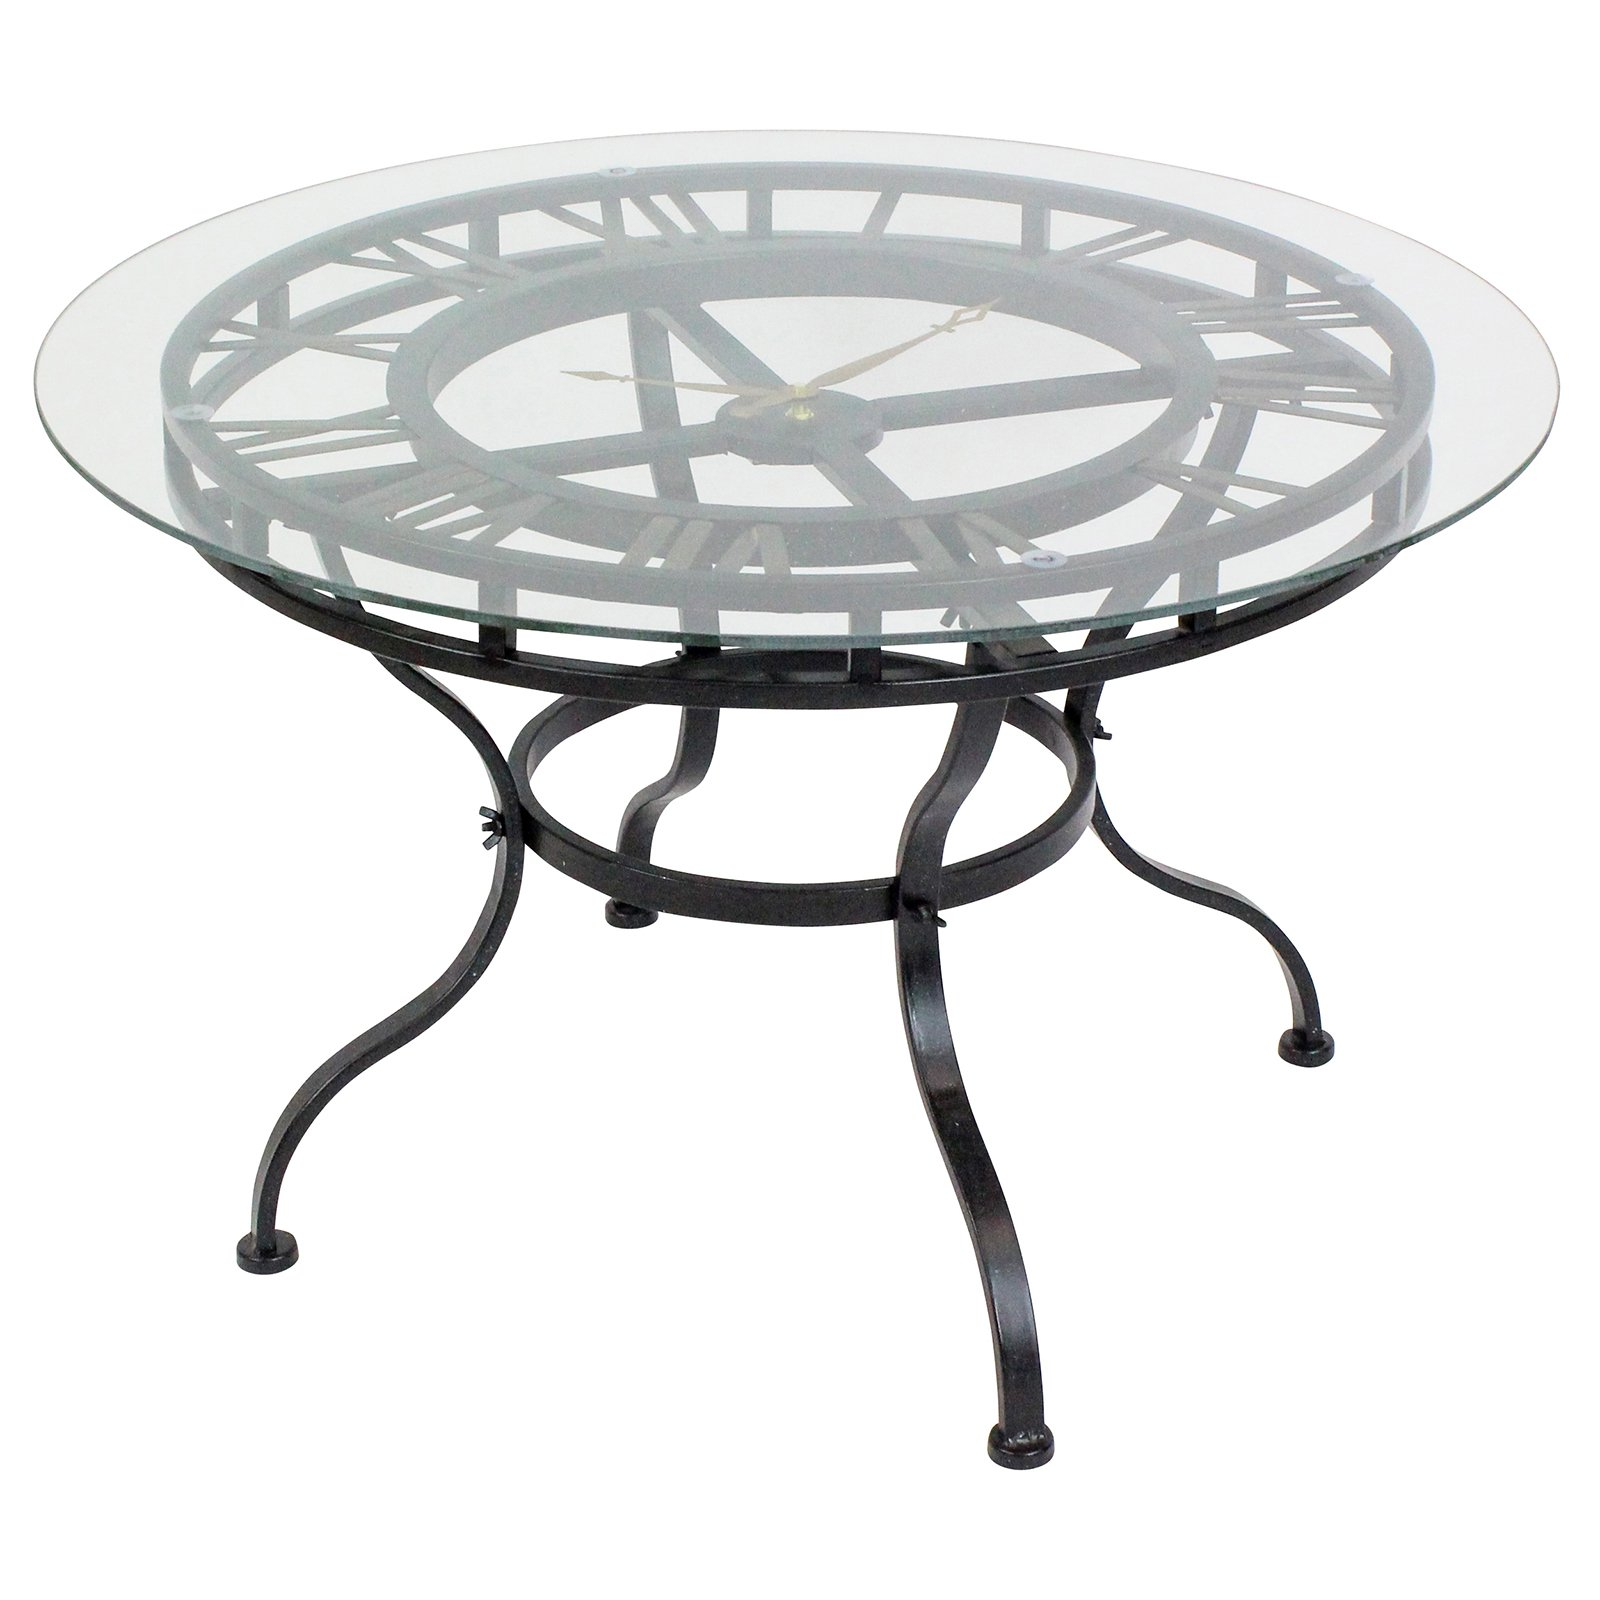 Kyndal Cocktail Table with Clock by Aspire Home Accents